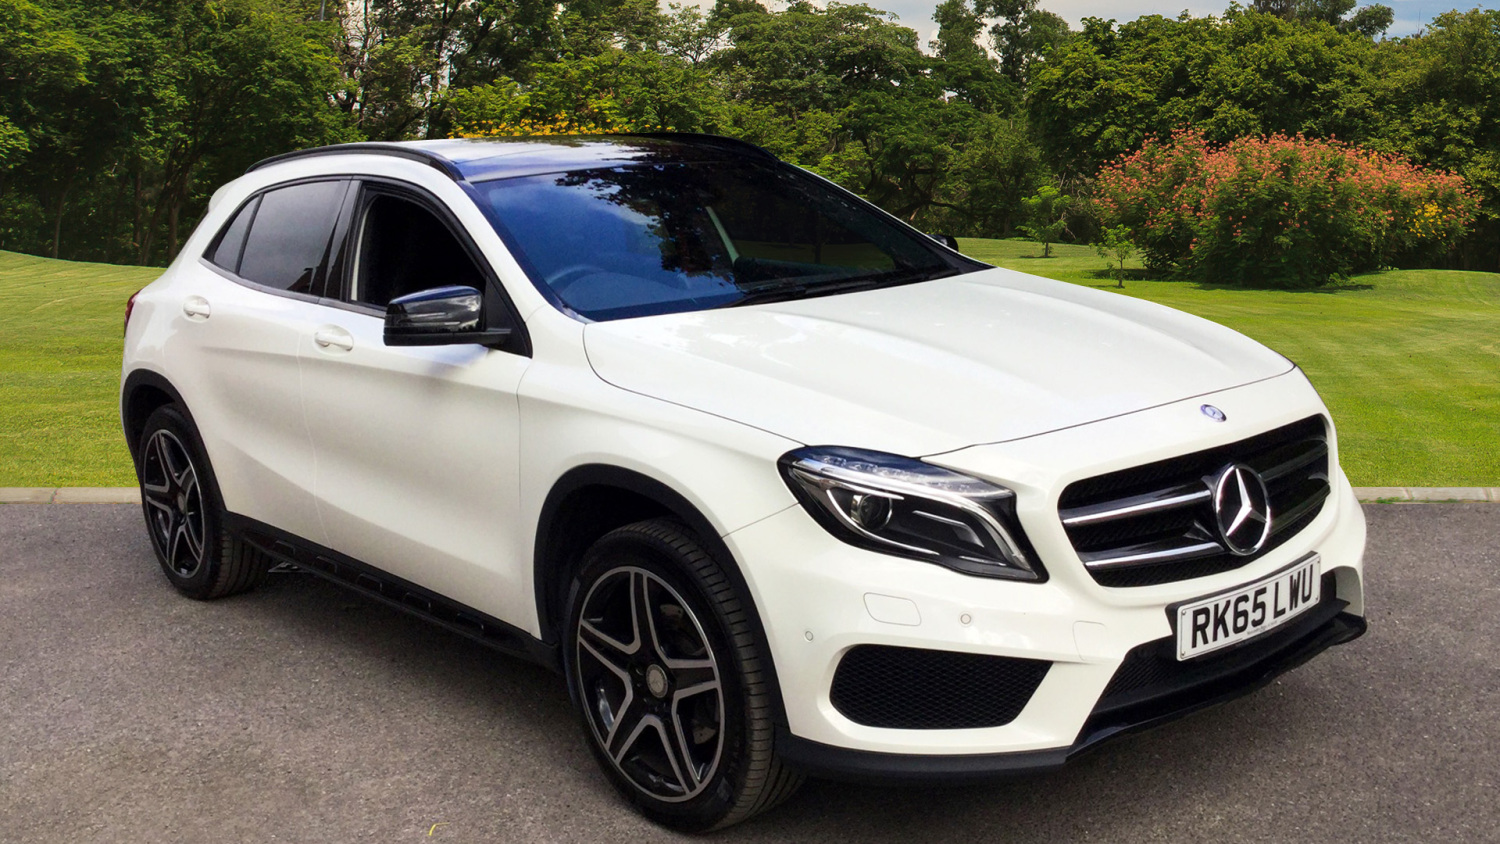 used mercedes benz gla gla 250 4matic amg line 5dr auto premium plus petrol hatchback for sale. Black Bedroom Furniture Sets. Home Design Ideas